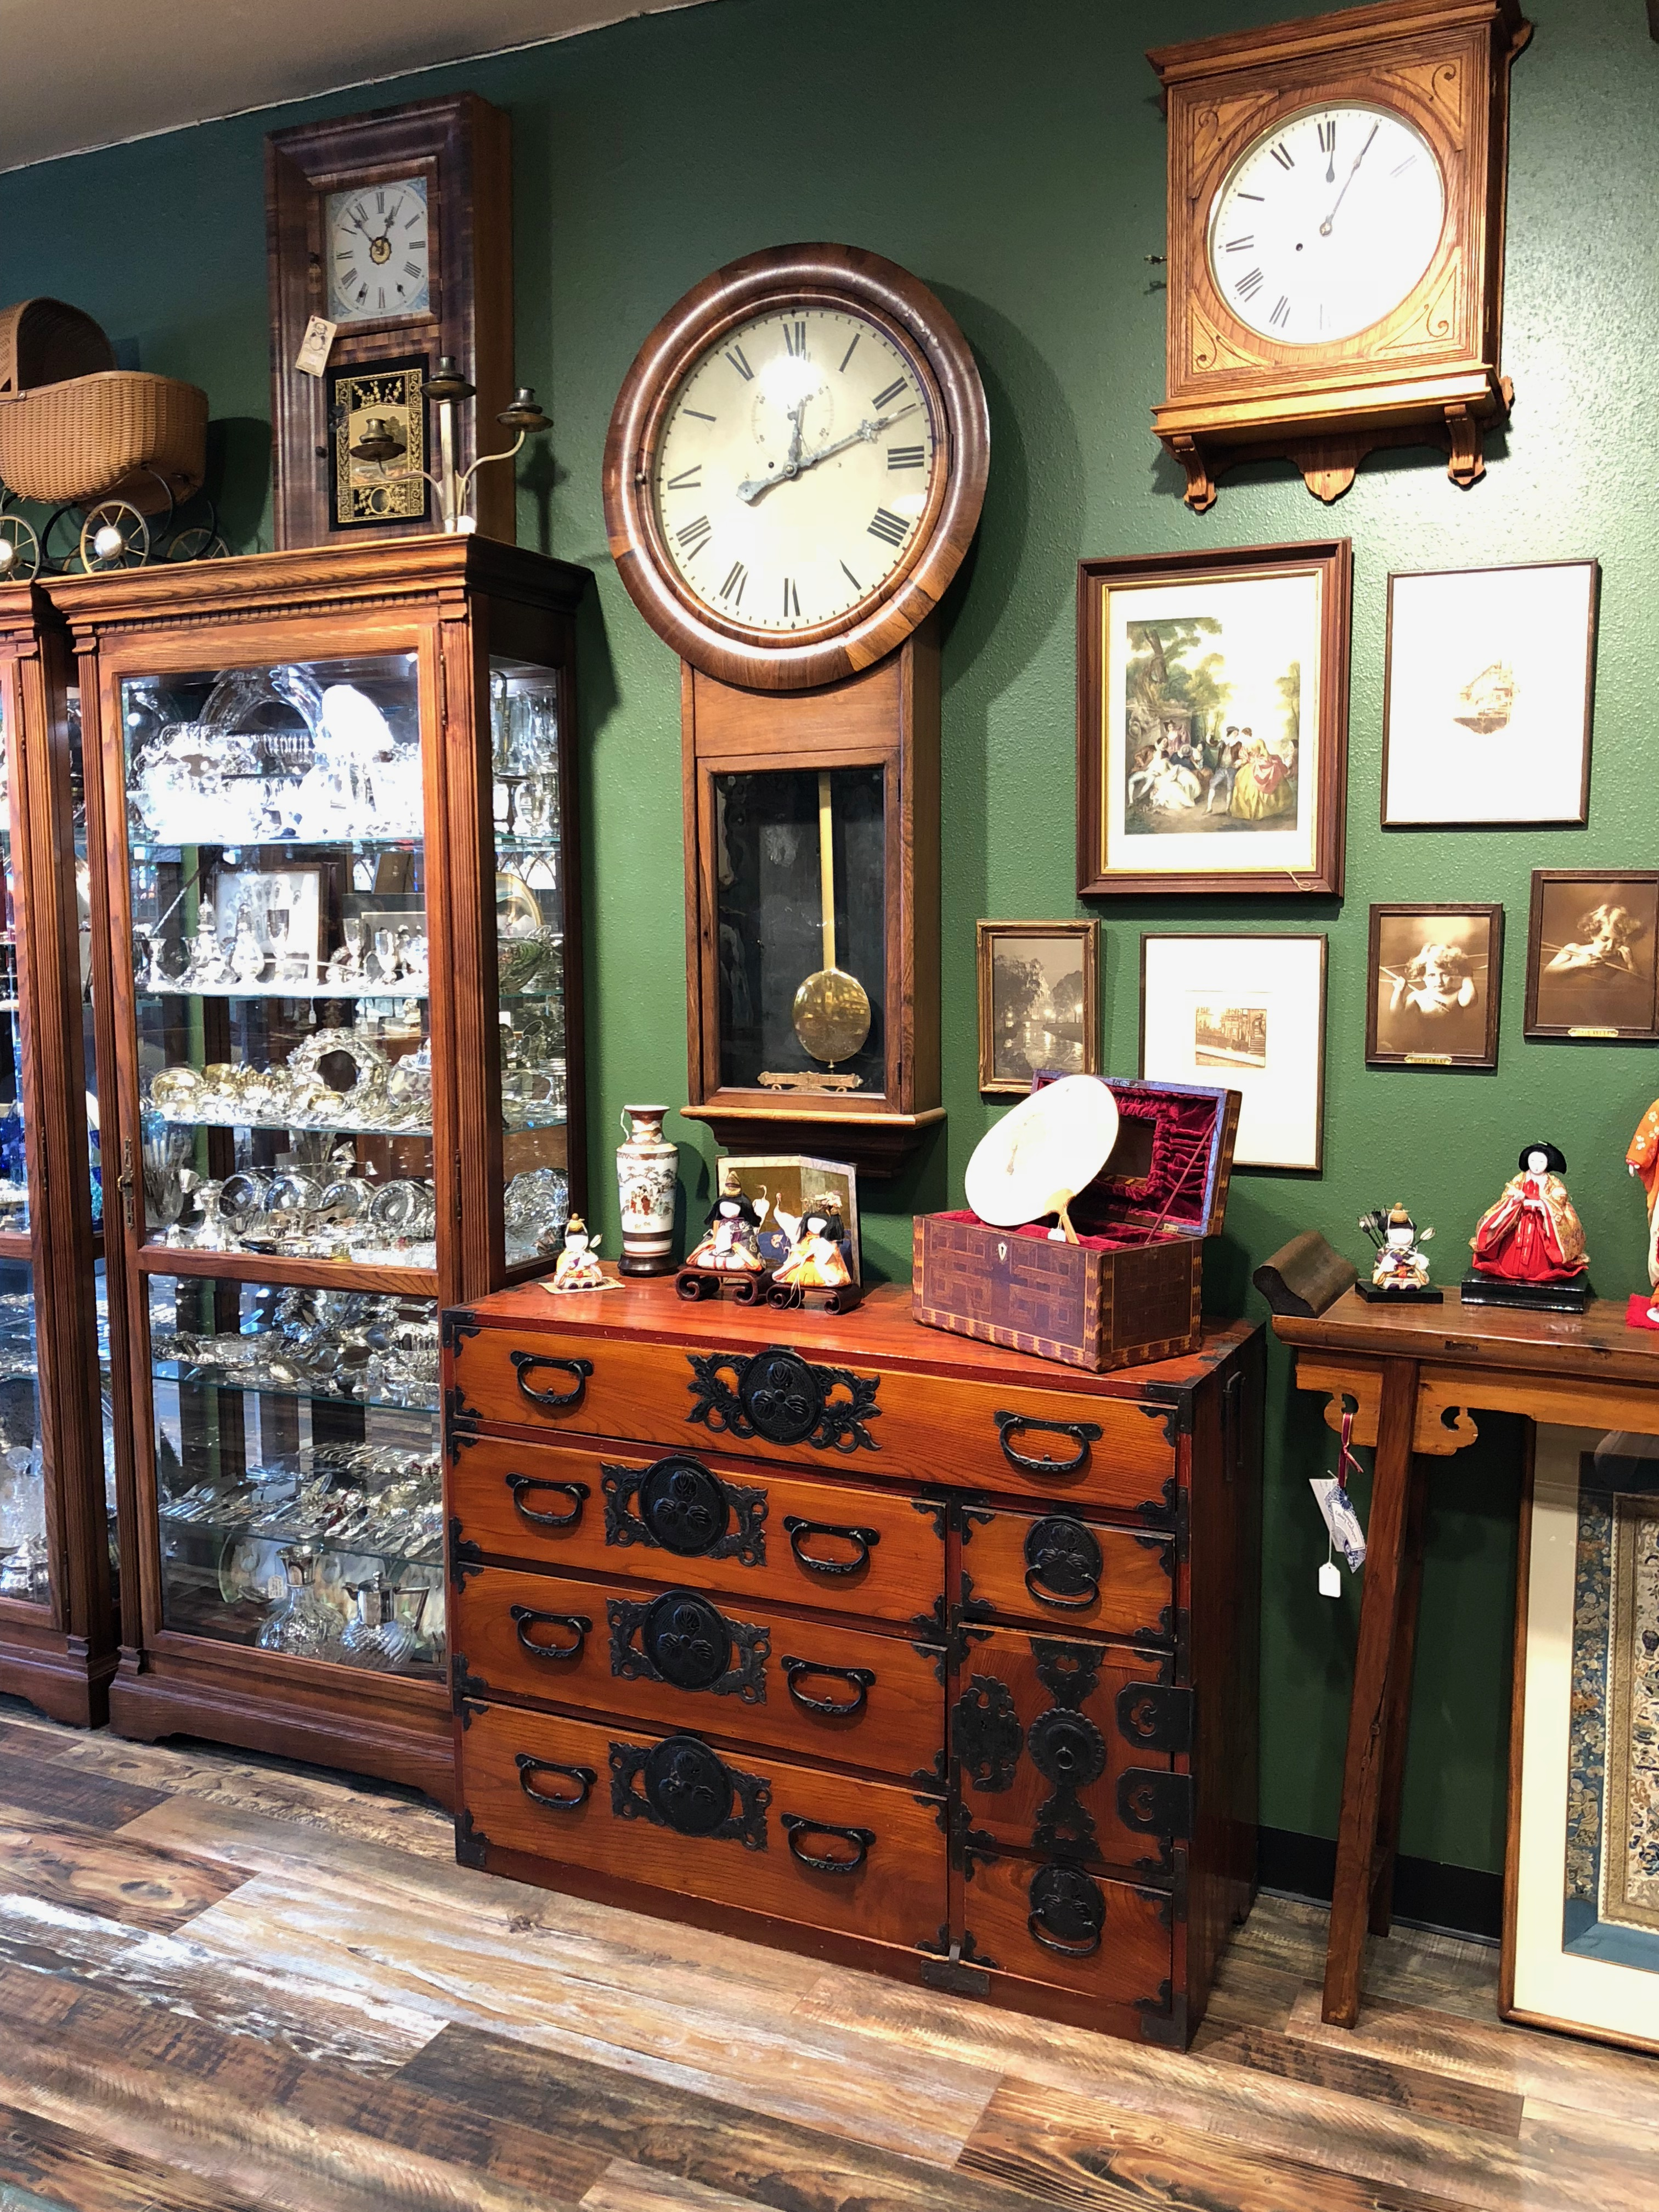 Furniture and antique clock